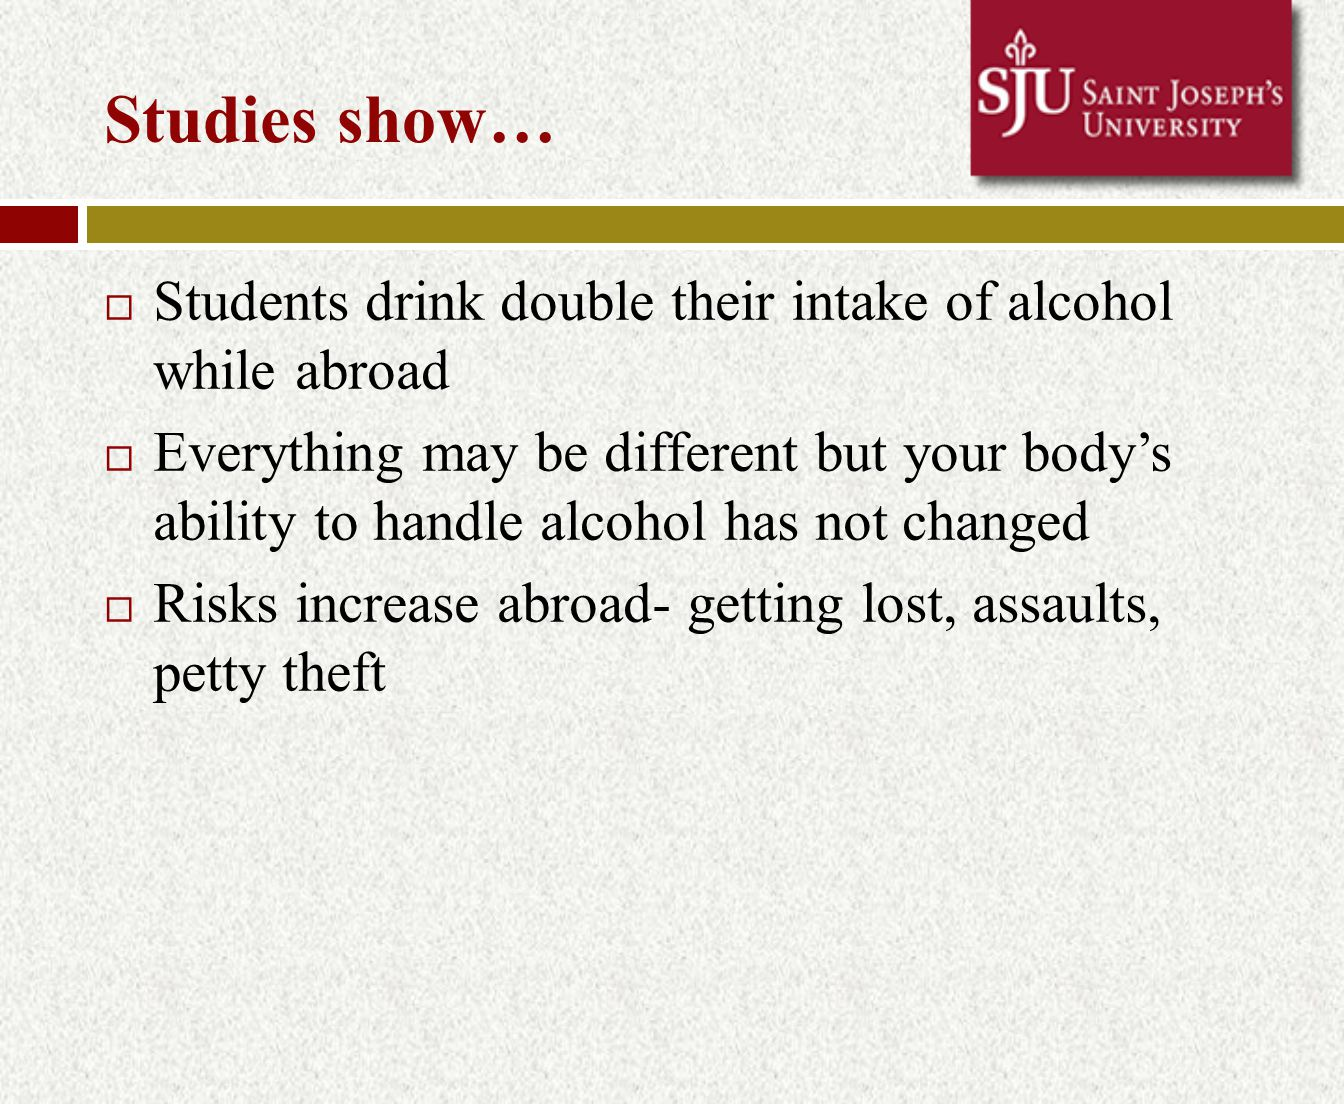 Studies show…  Students drink double their intake of alcohol while abroad  Everything may be different but your body's ability to handle alcohol has not changed  Risks increase abroad- getting lost, assaults, petty theft